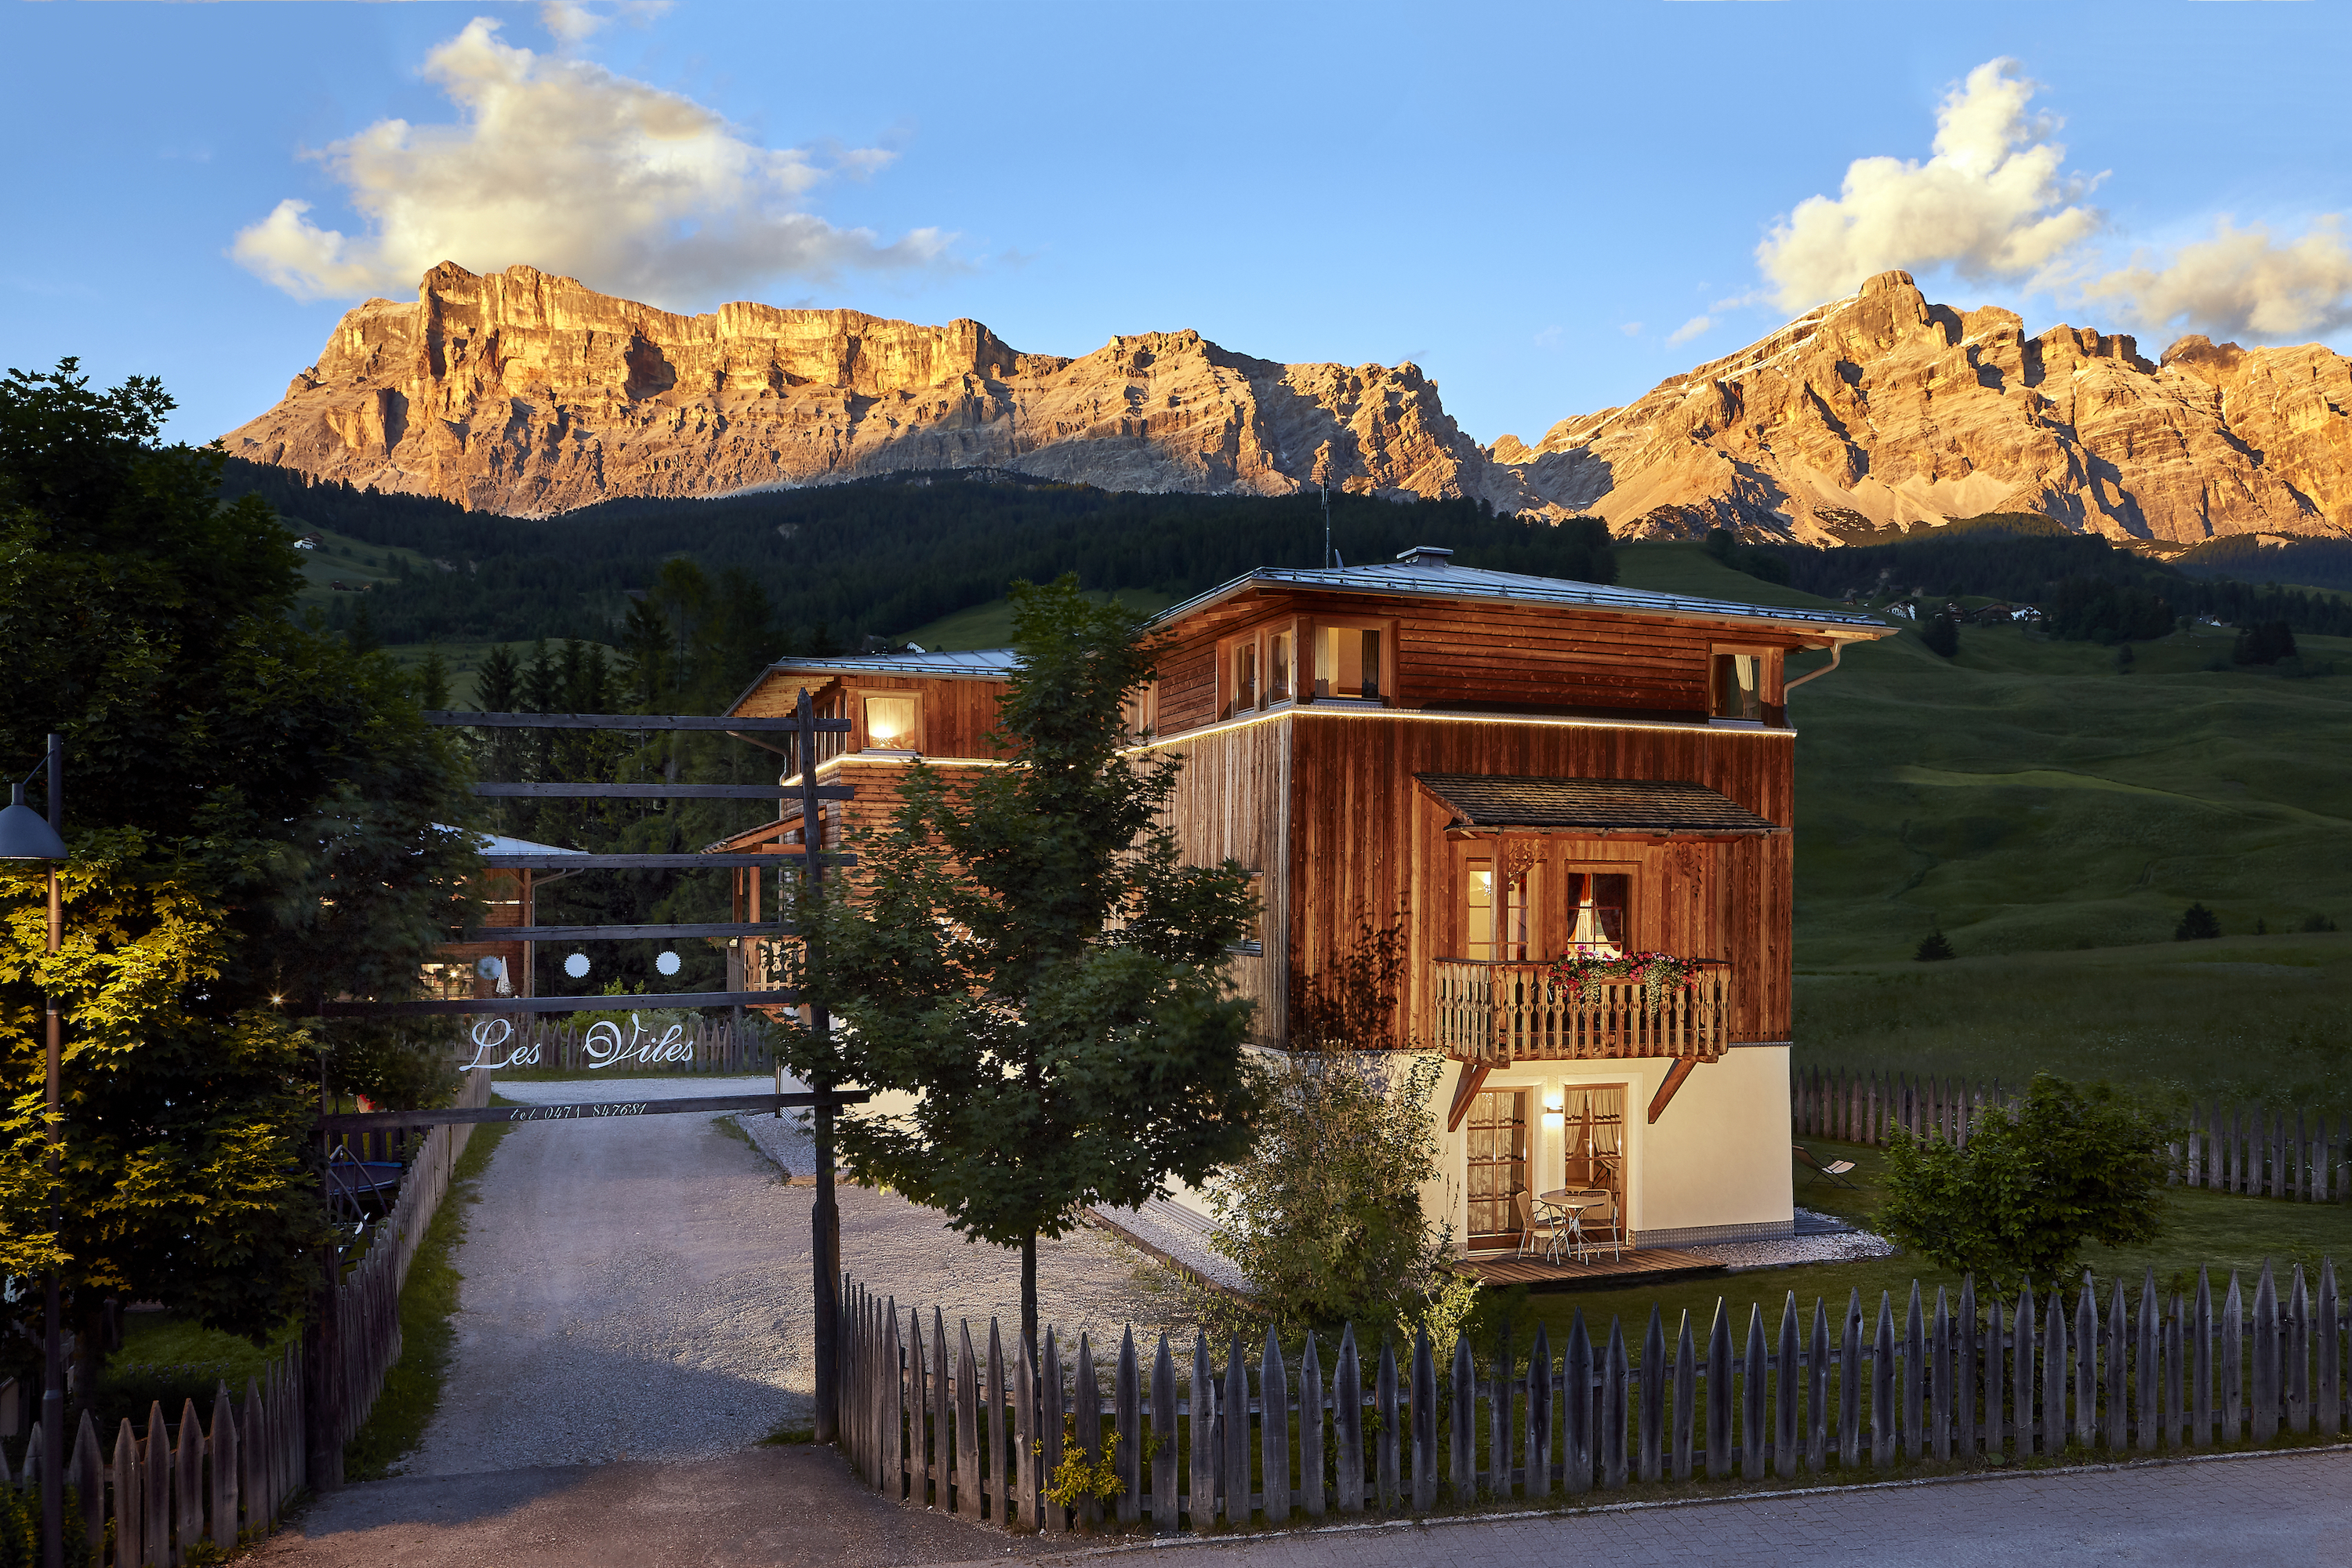 Vacation rental Les Viles in South Tyrol. © Dolomit Boutique Hotel